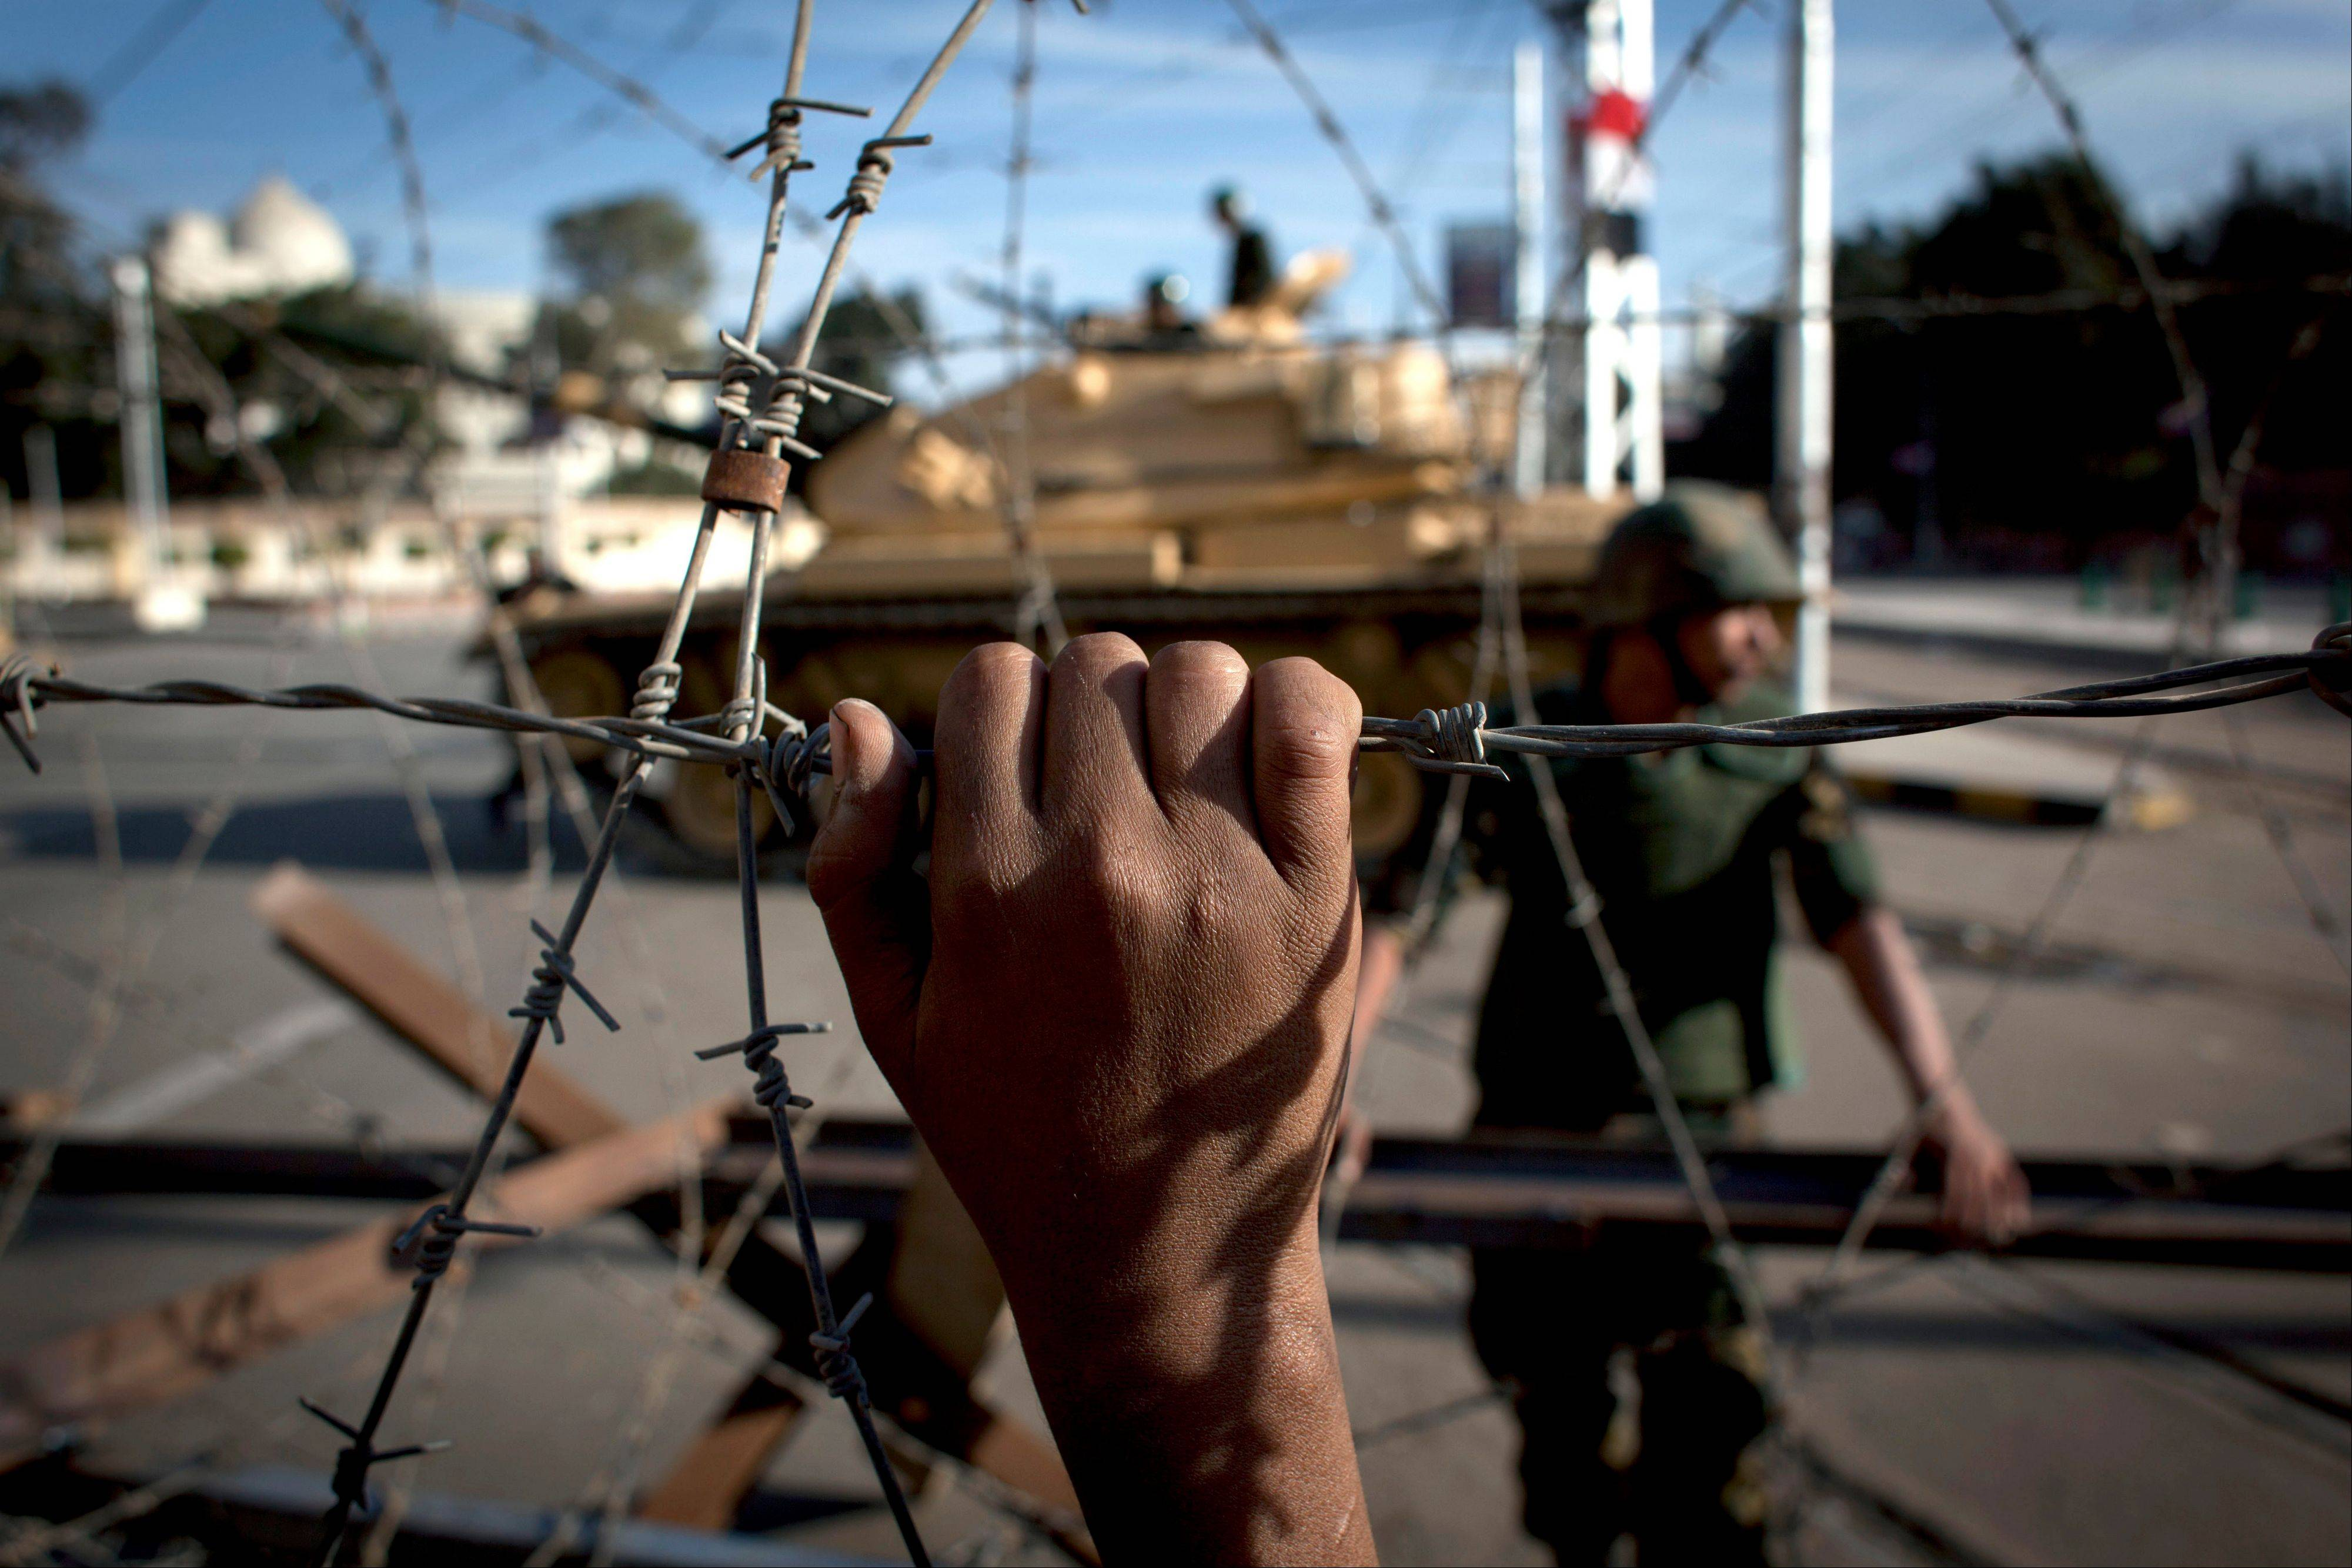 An Egyptian army tank is seen behind barbed wire securing the perimeter of the presidential palace while protesters on the other side chant anti President Mohammed Morsi slogans, in Cairo, Egypt, Thursday, Dec. 6, 2012. The Egyptian army deployed tanks and gave both supporters and opponents of Mohammed Morsi a deadline to leave the area outside the presidential palace Thursday following fierce street battles that left several people dead and hundreds injured.